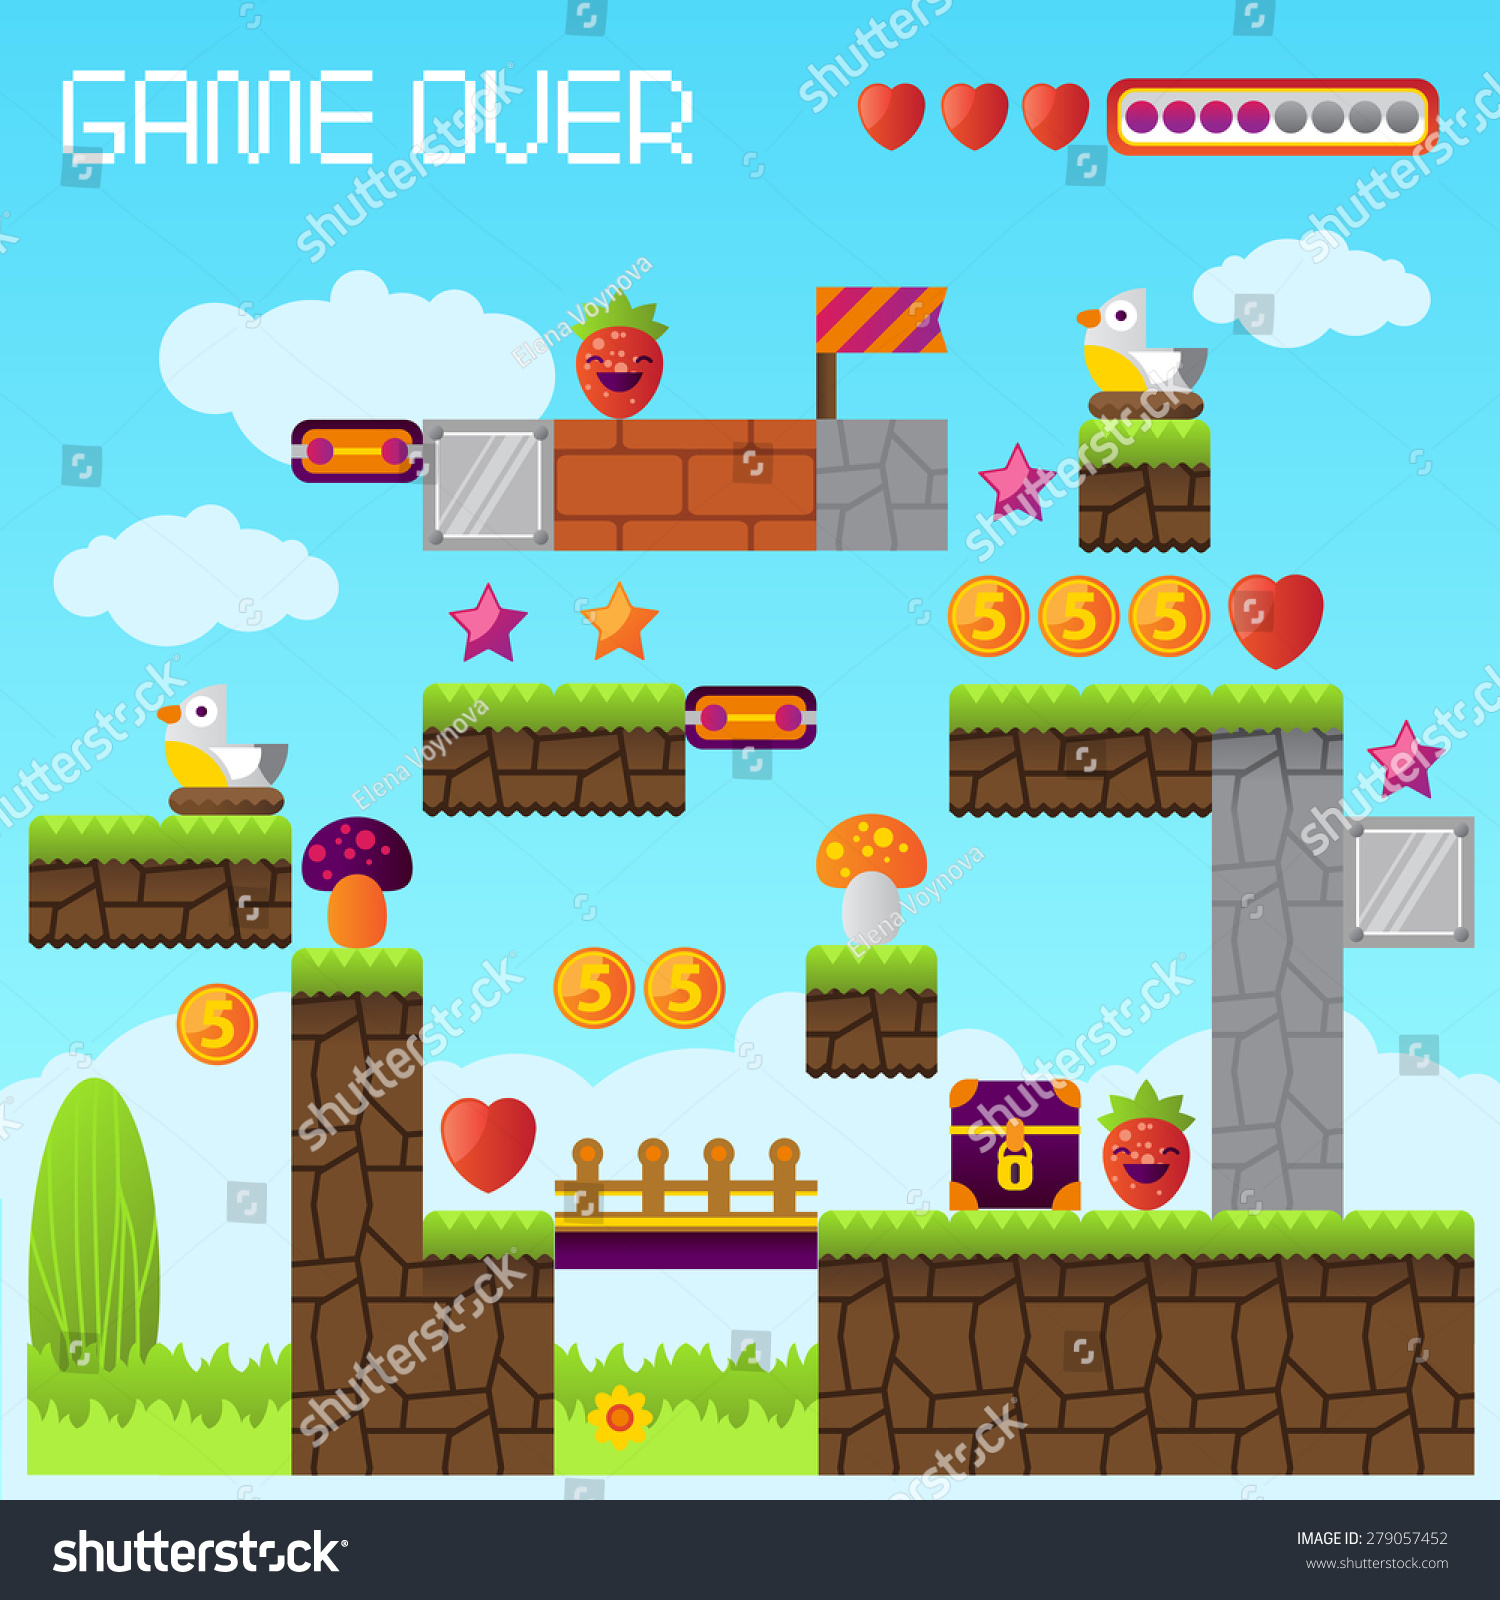 stock-vector-video-platform-game-interfa